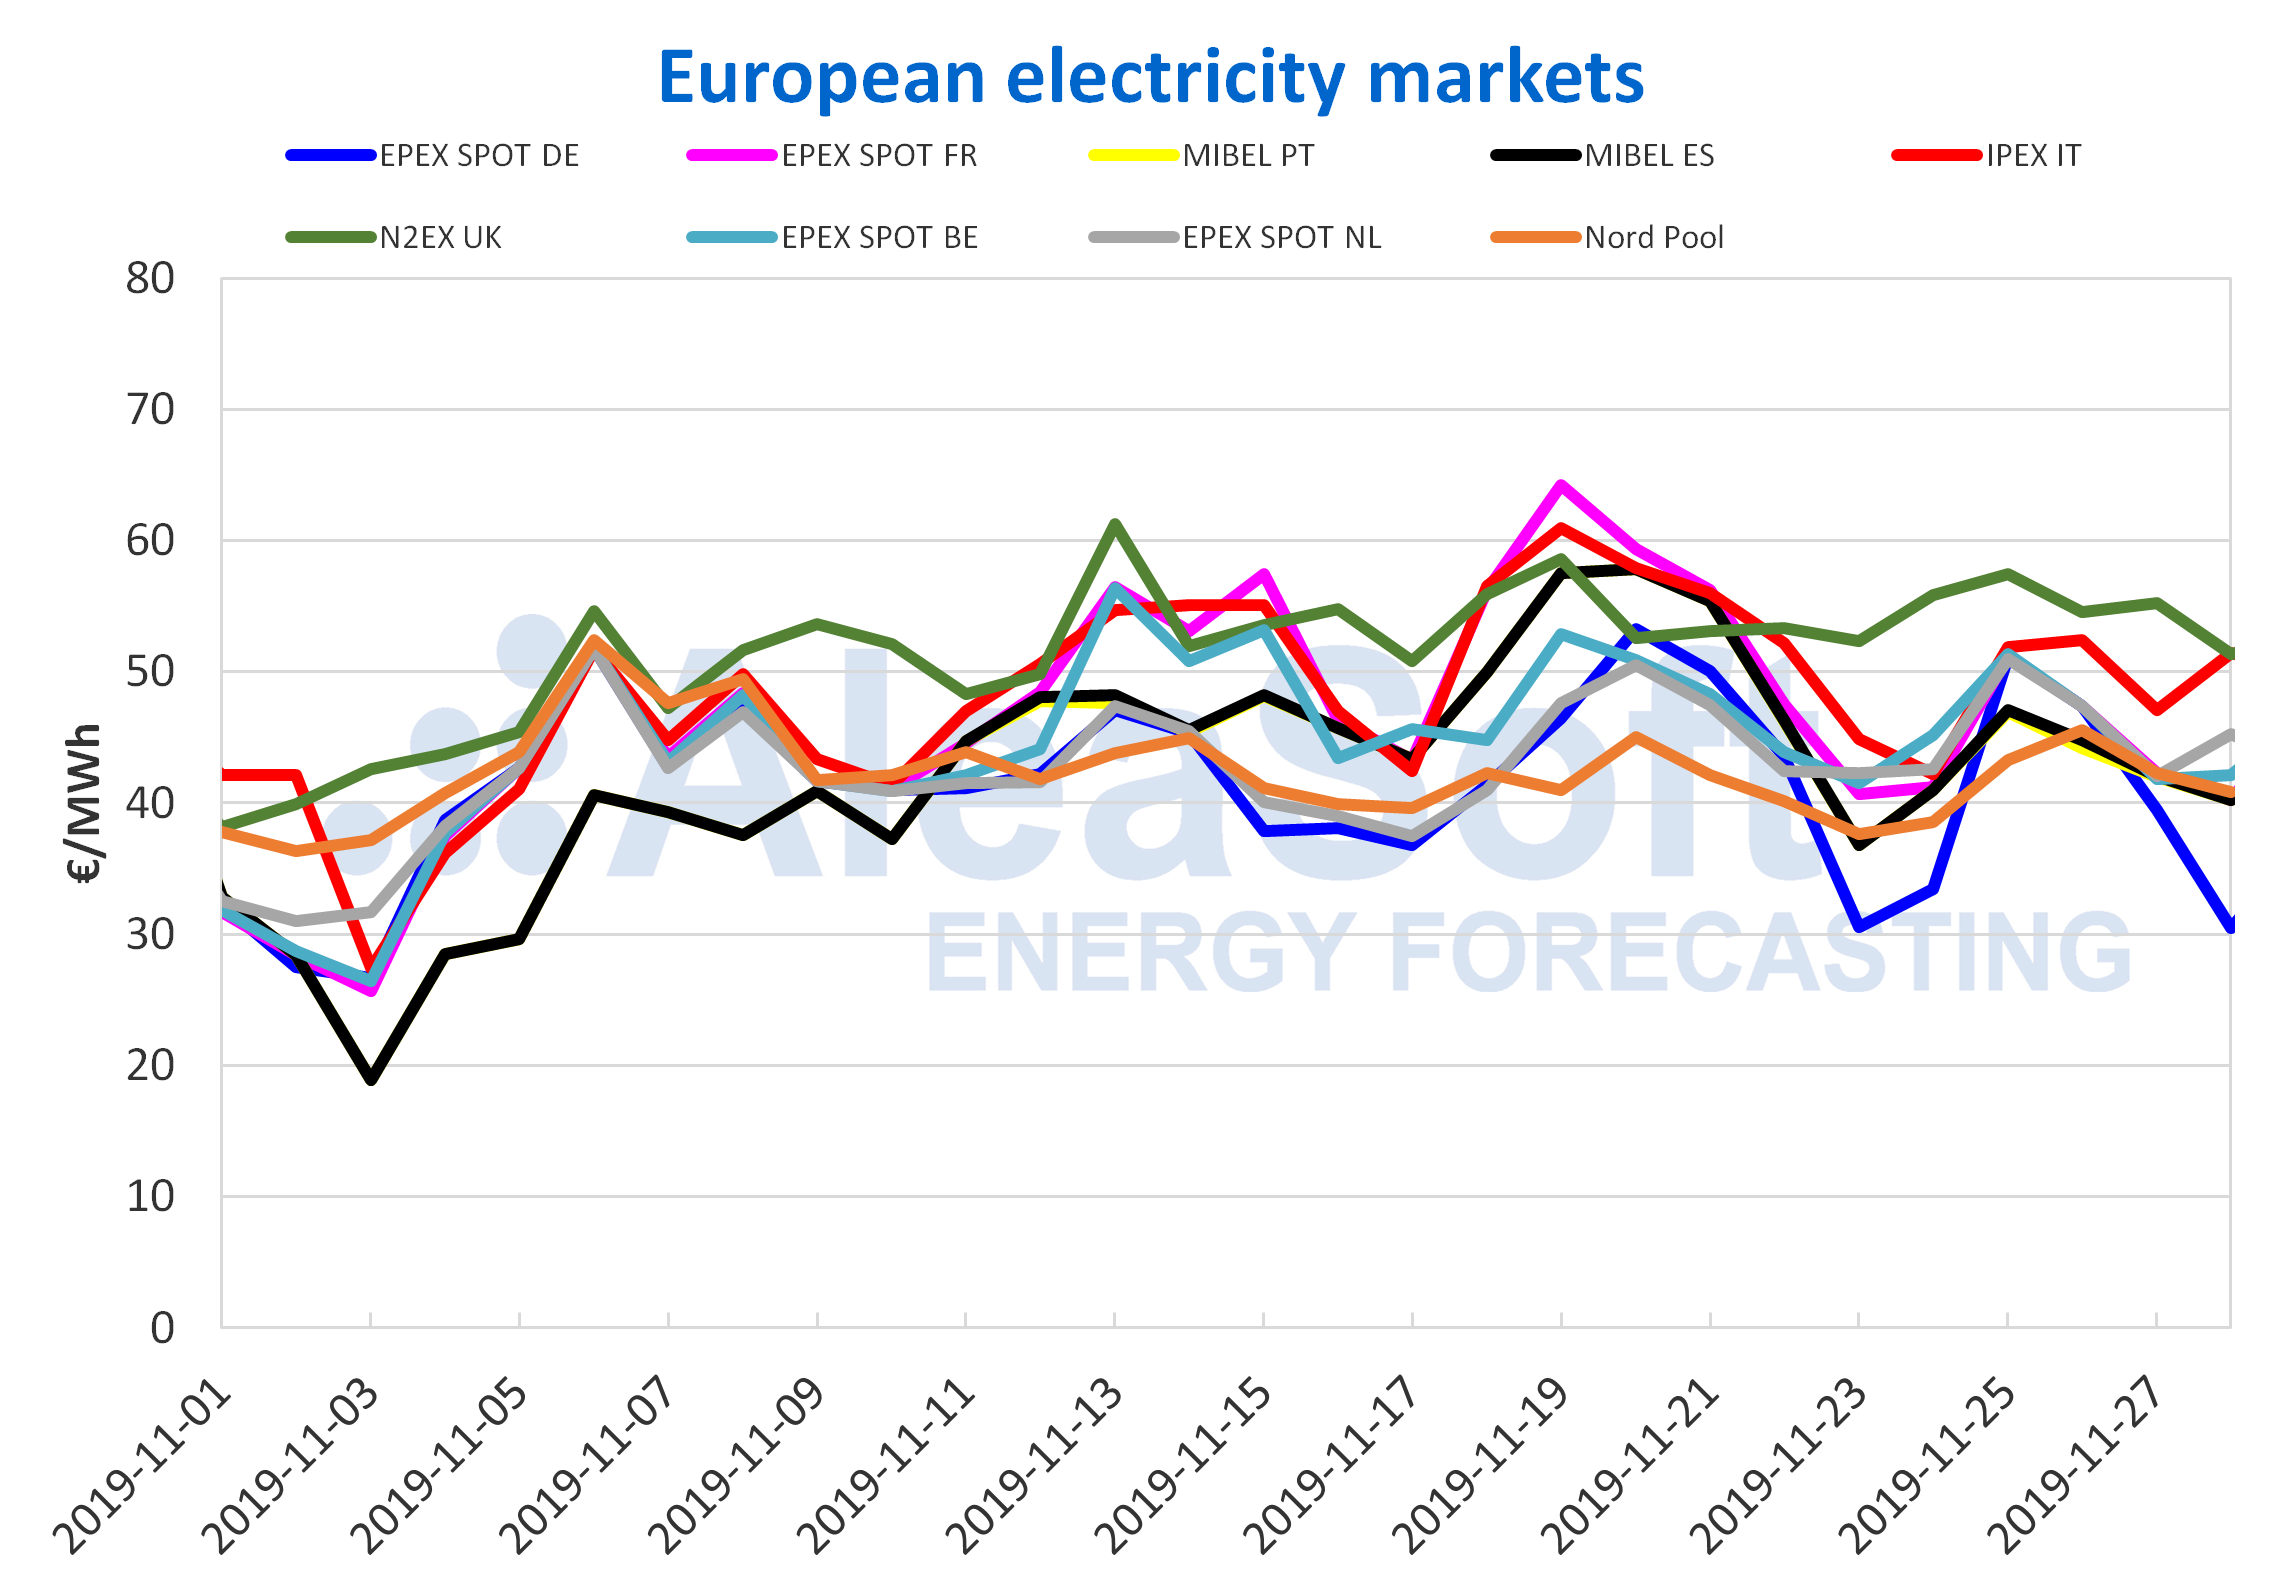 AleaSoft - European electricity markets prices